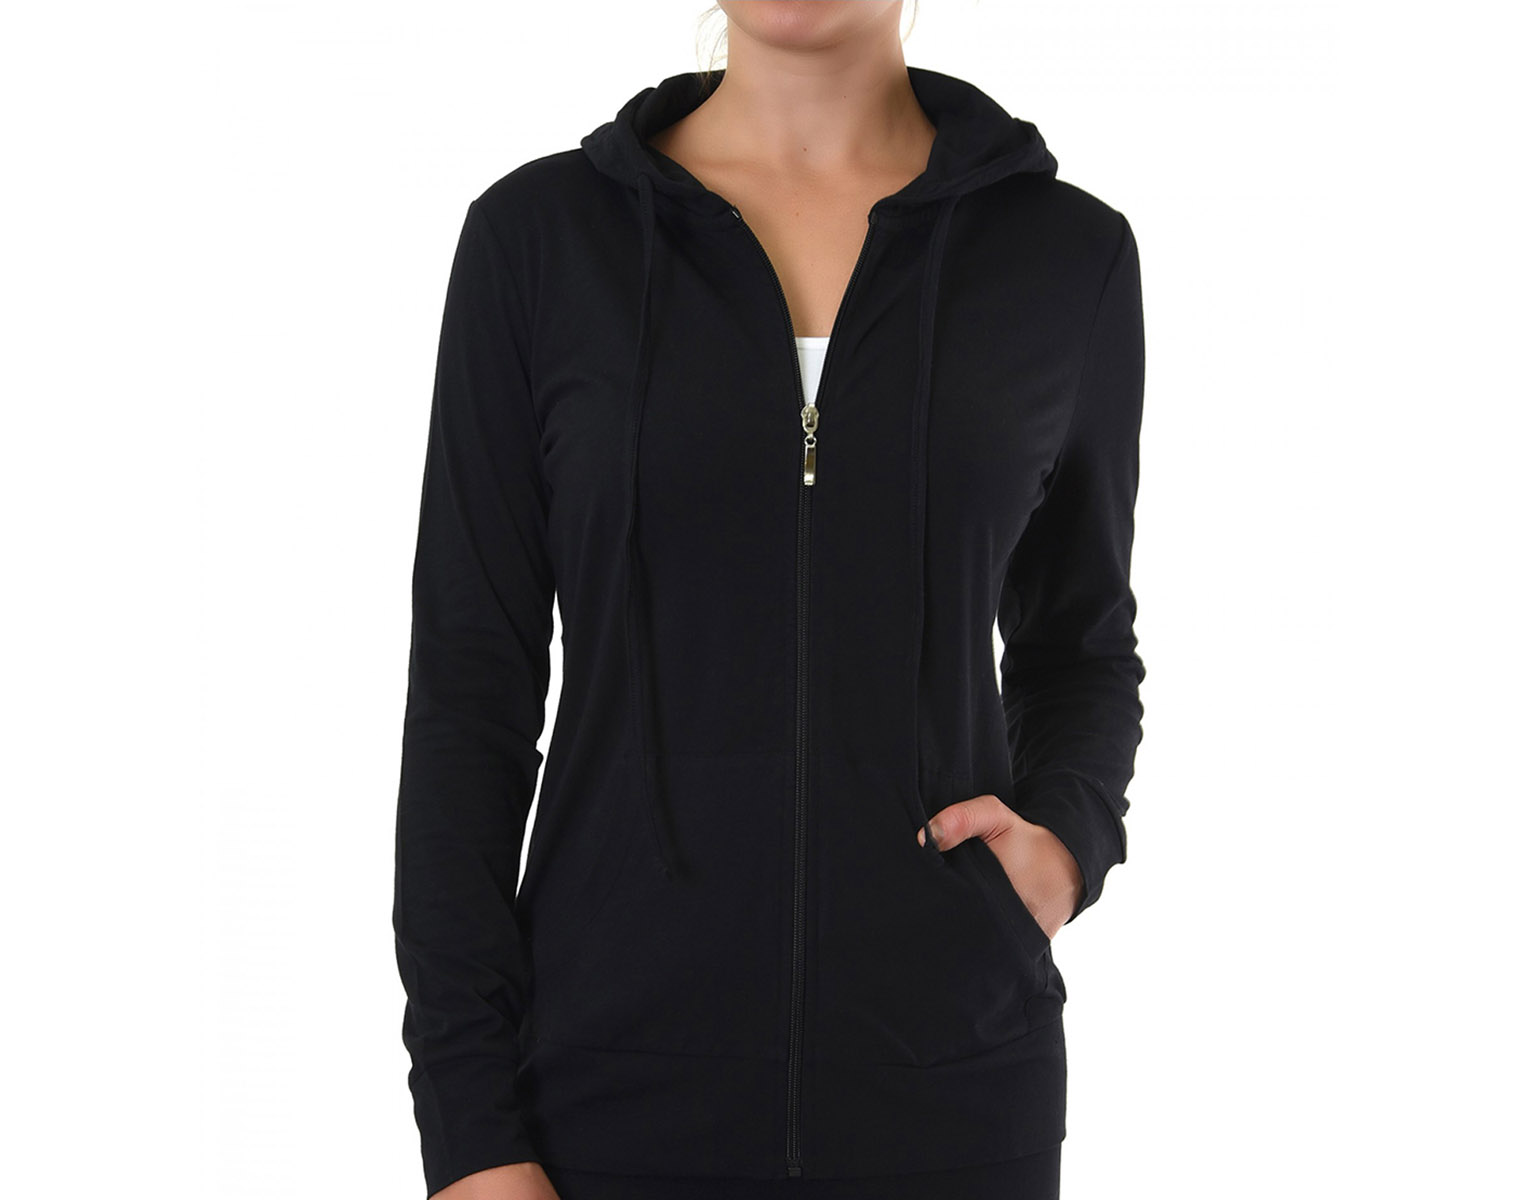 size 40 807e4 364fc Women's Zip Up Active Yoga Gym Casual Thin Cotton Long Sleeve Jacket Hoodie